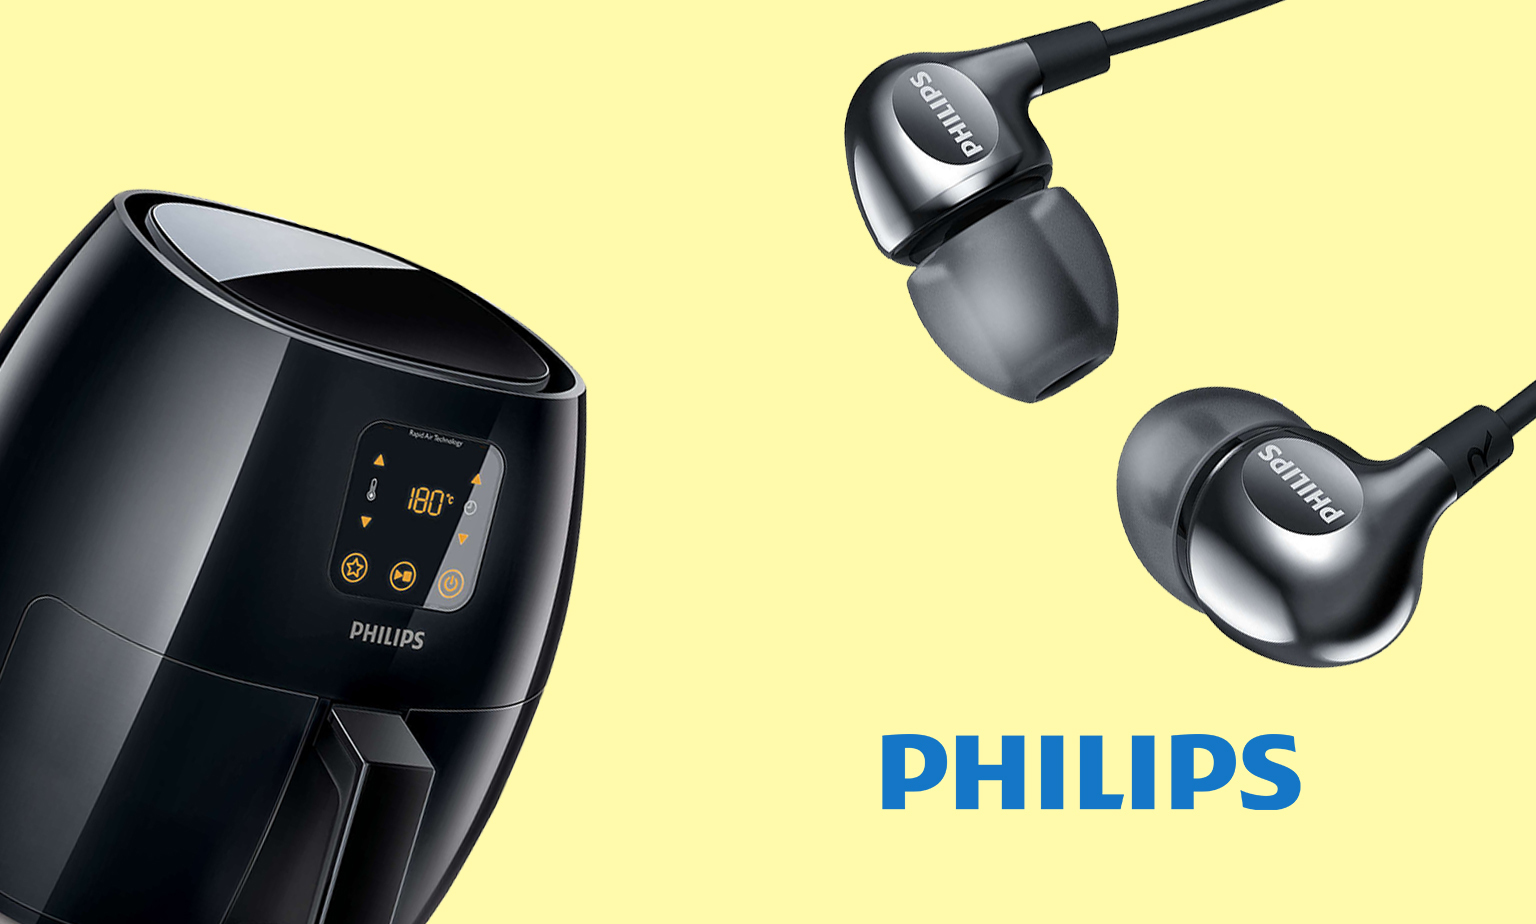 20% off Everything Philips at KG Electronics